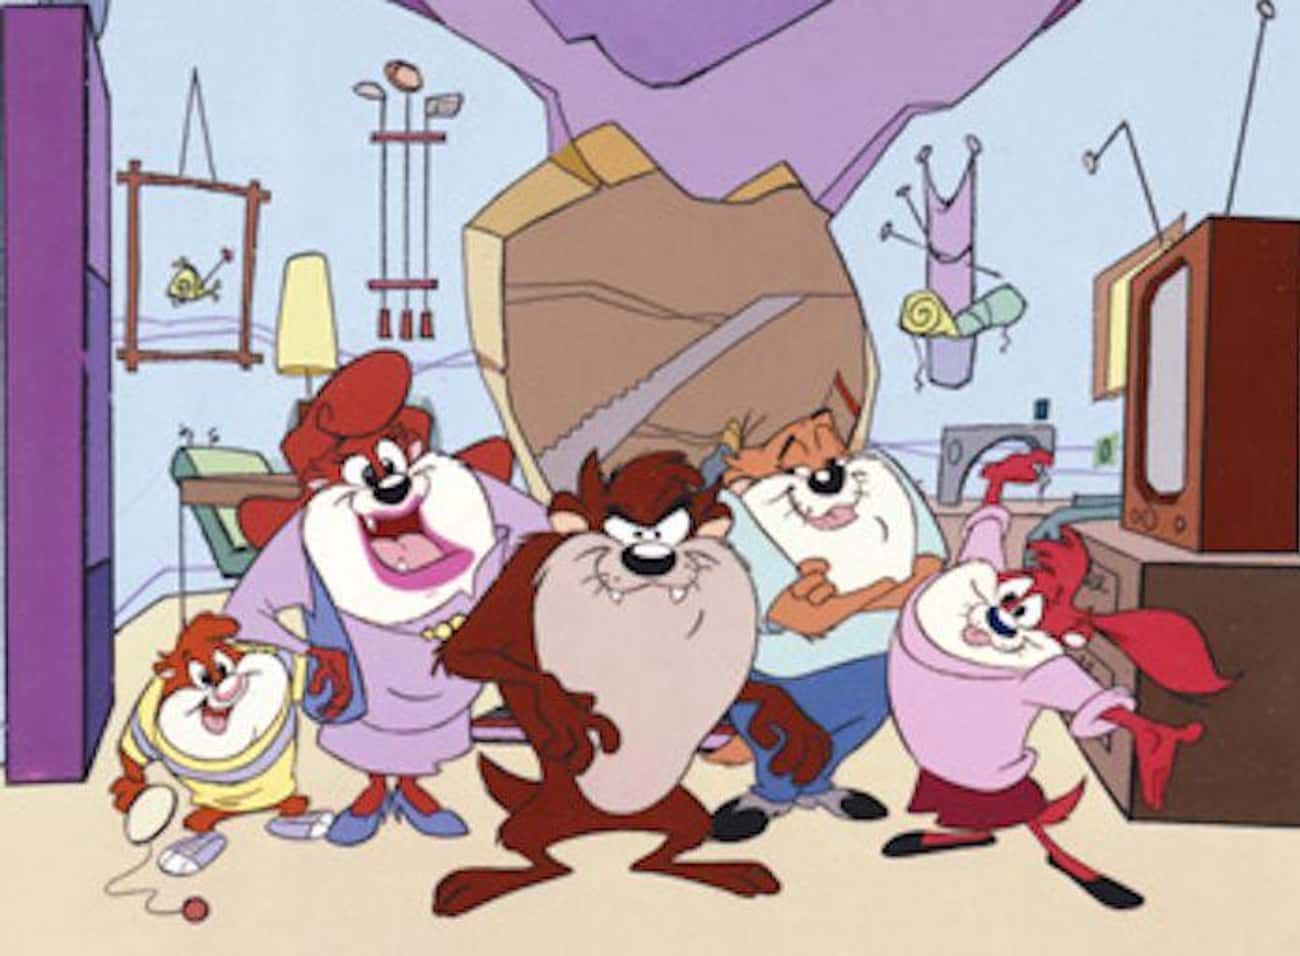 Taz-Mania is listed (or ranked) 1 on the list 13 Awesome Fox Kids Cartoons You Totally Forgot You Used to Watch